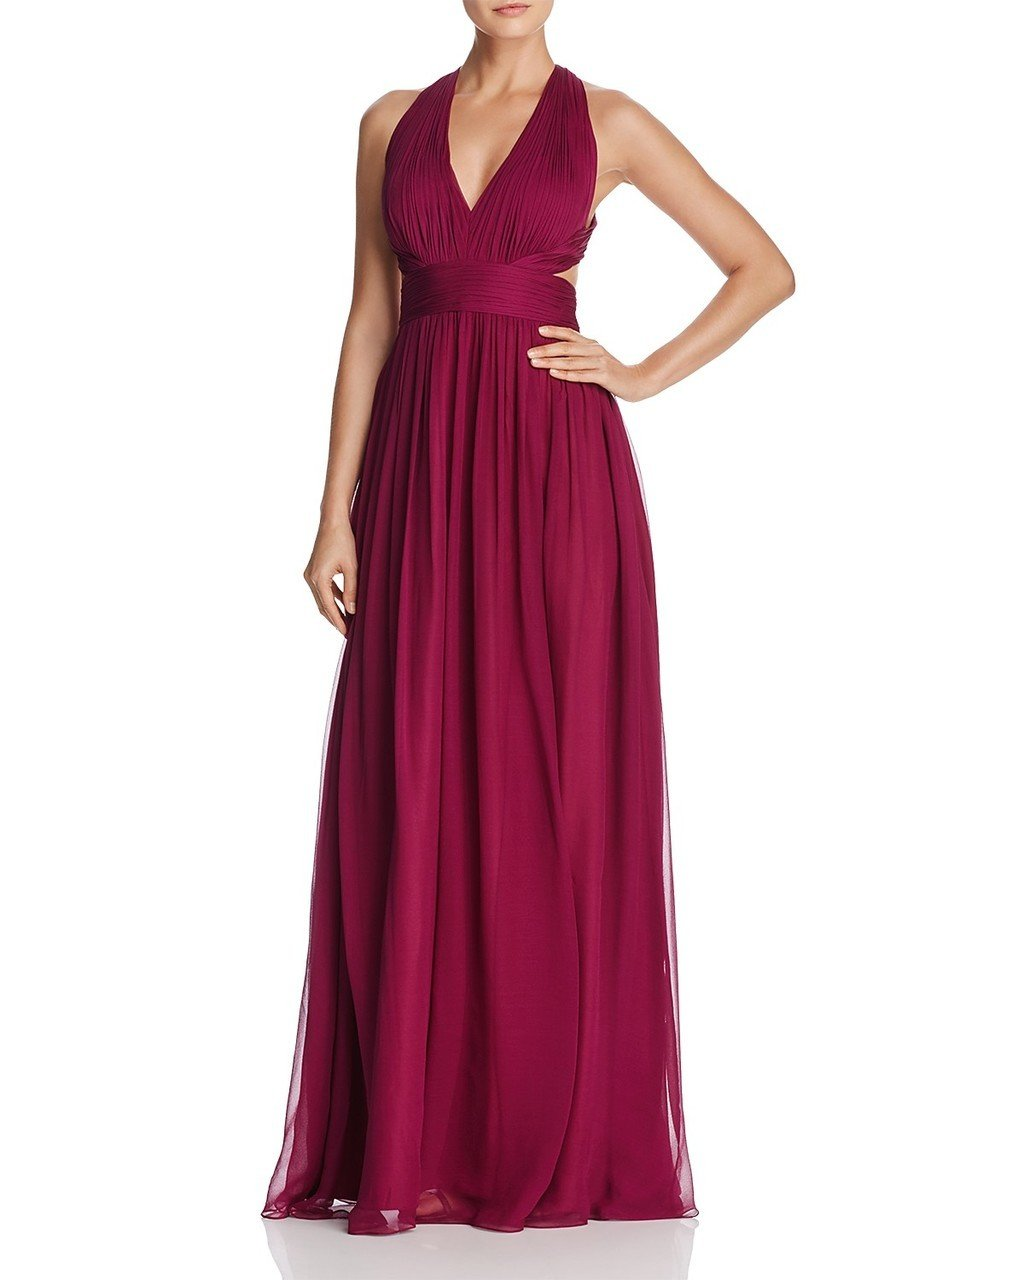 Aidan Mattox - 54456770 Plunging Cutout A-Line Flowing Silk Dress in Red